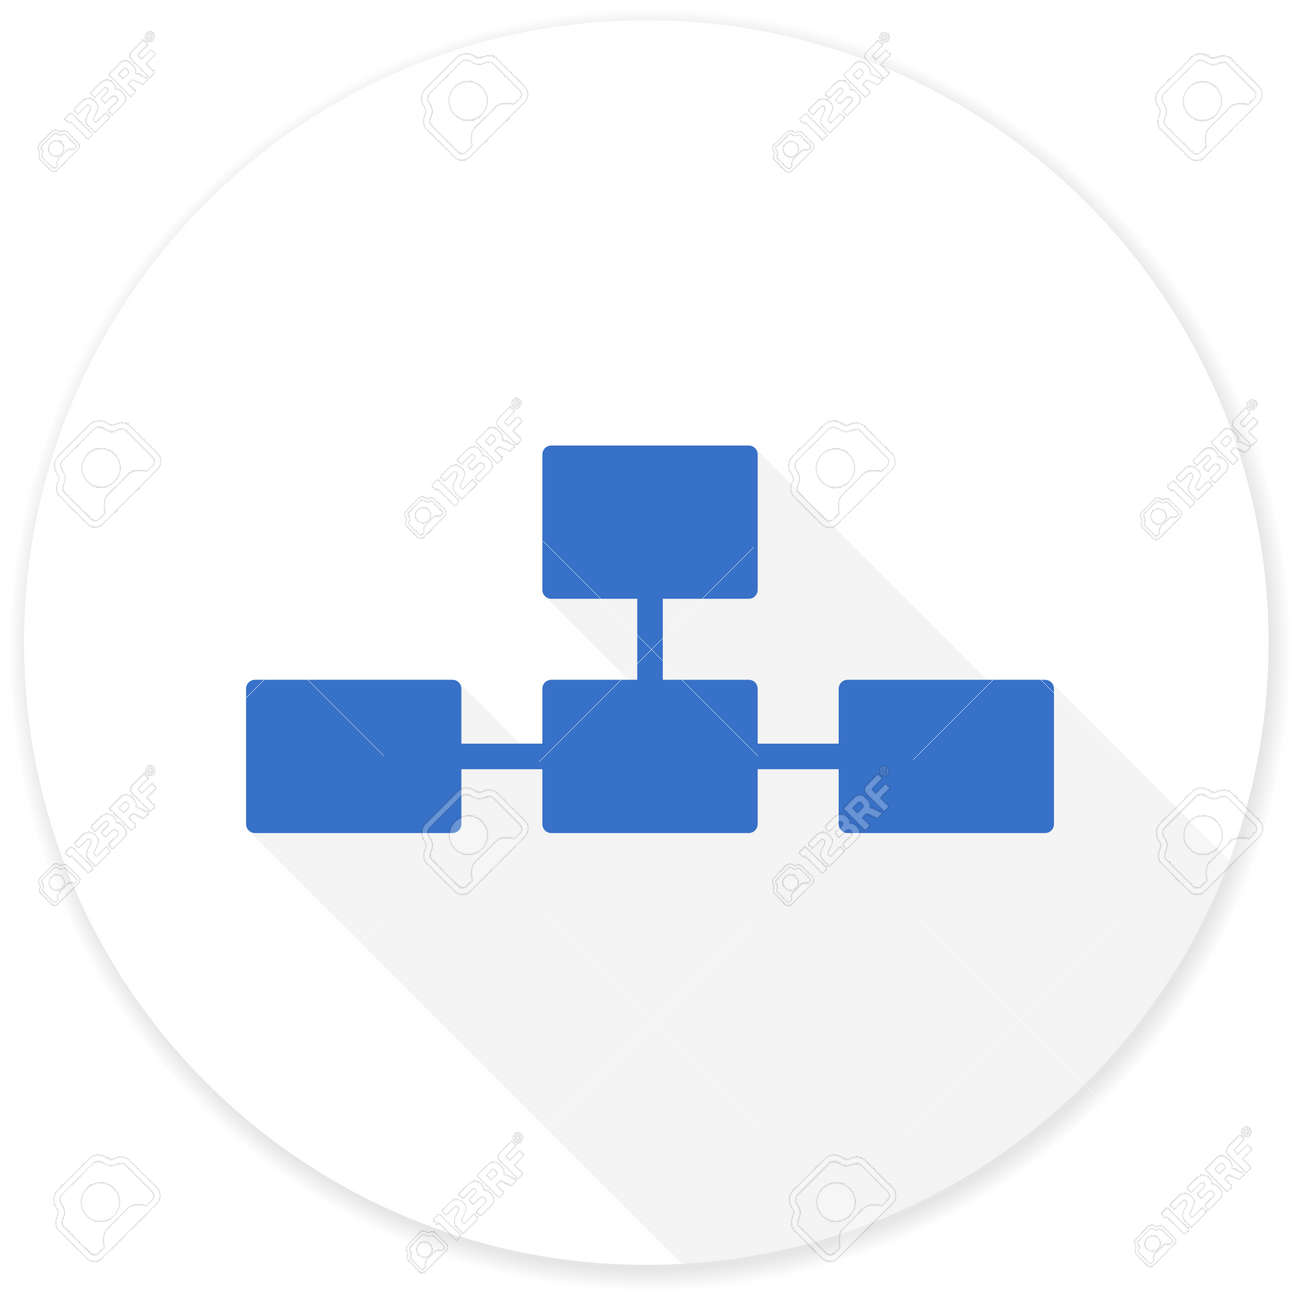 database flat design modern icon with long shadow for web and